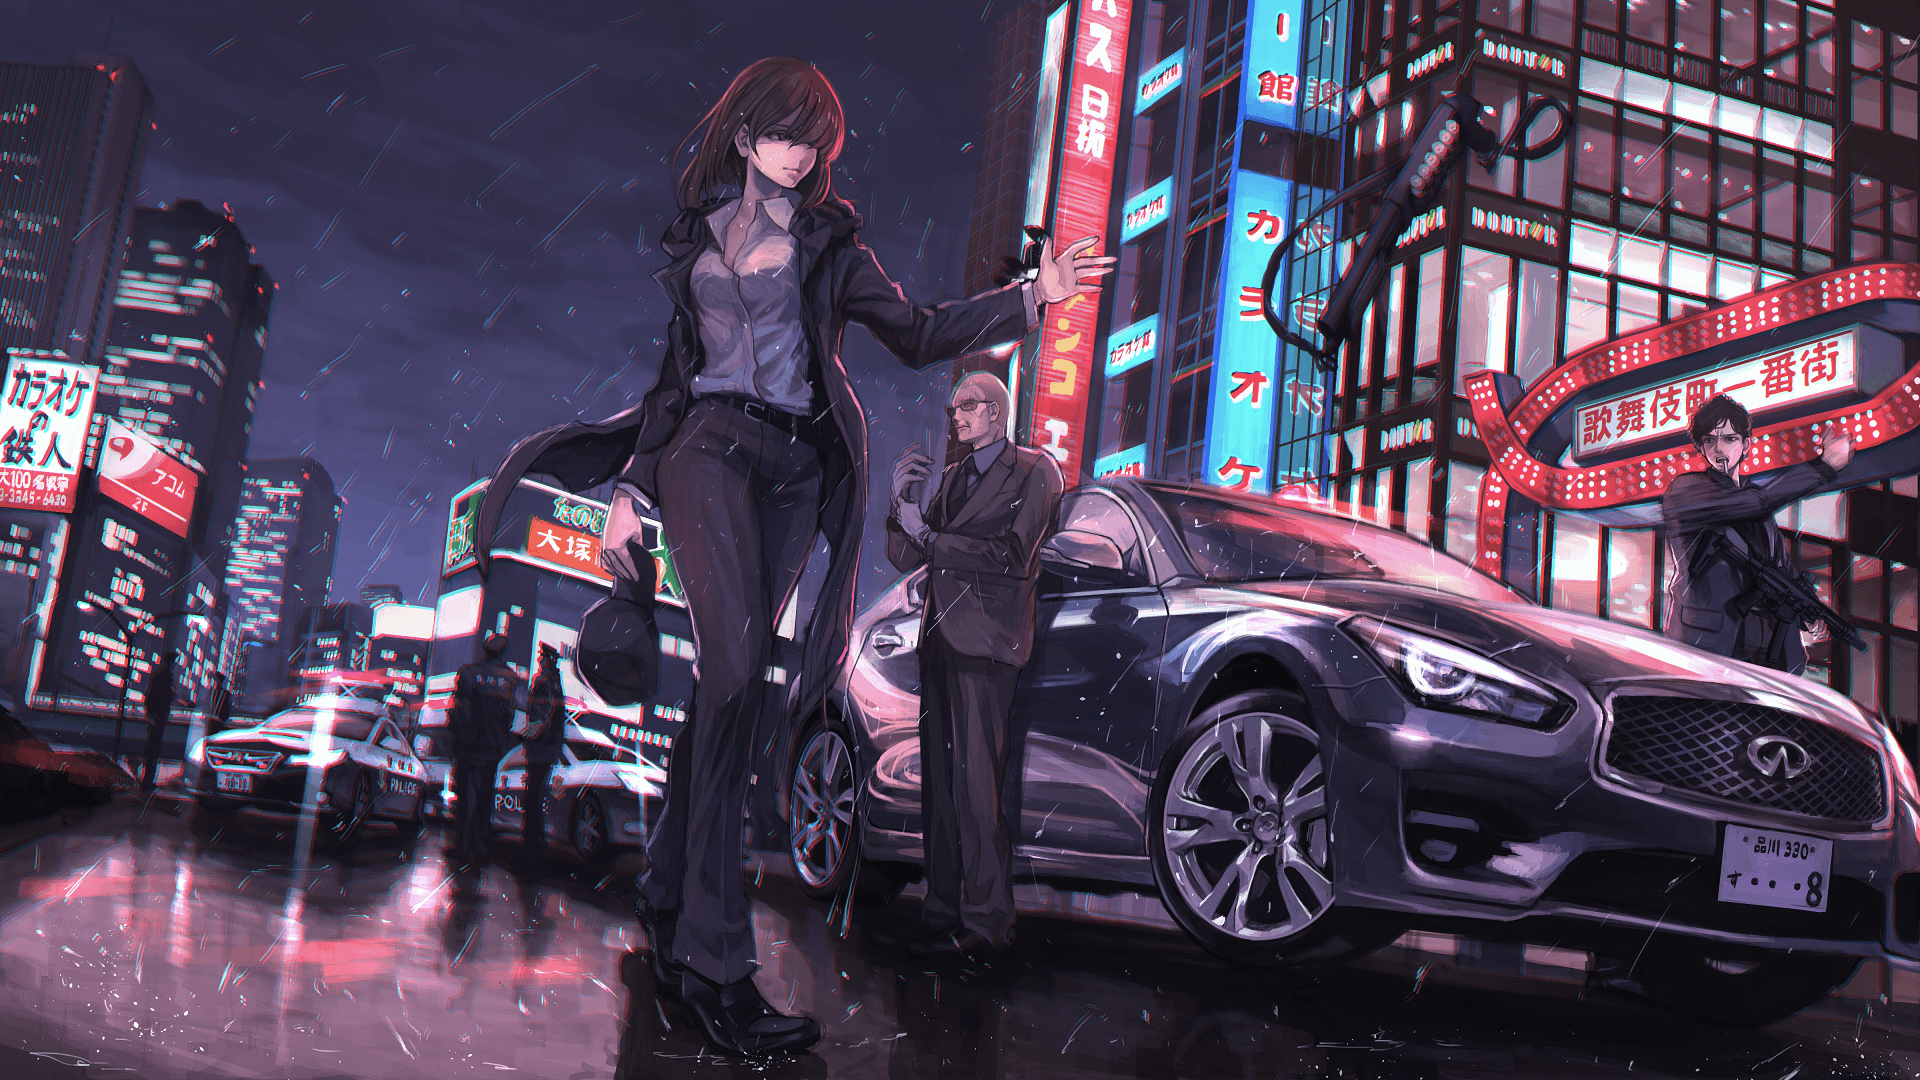 Police Anime Wallpapers   Top Police Anime Backgrounds 1920x1080